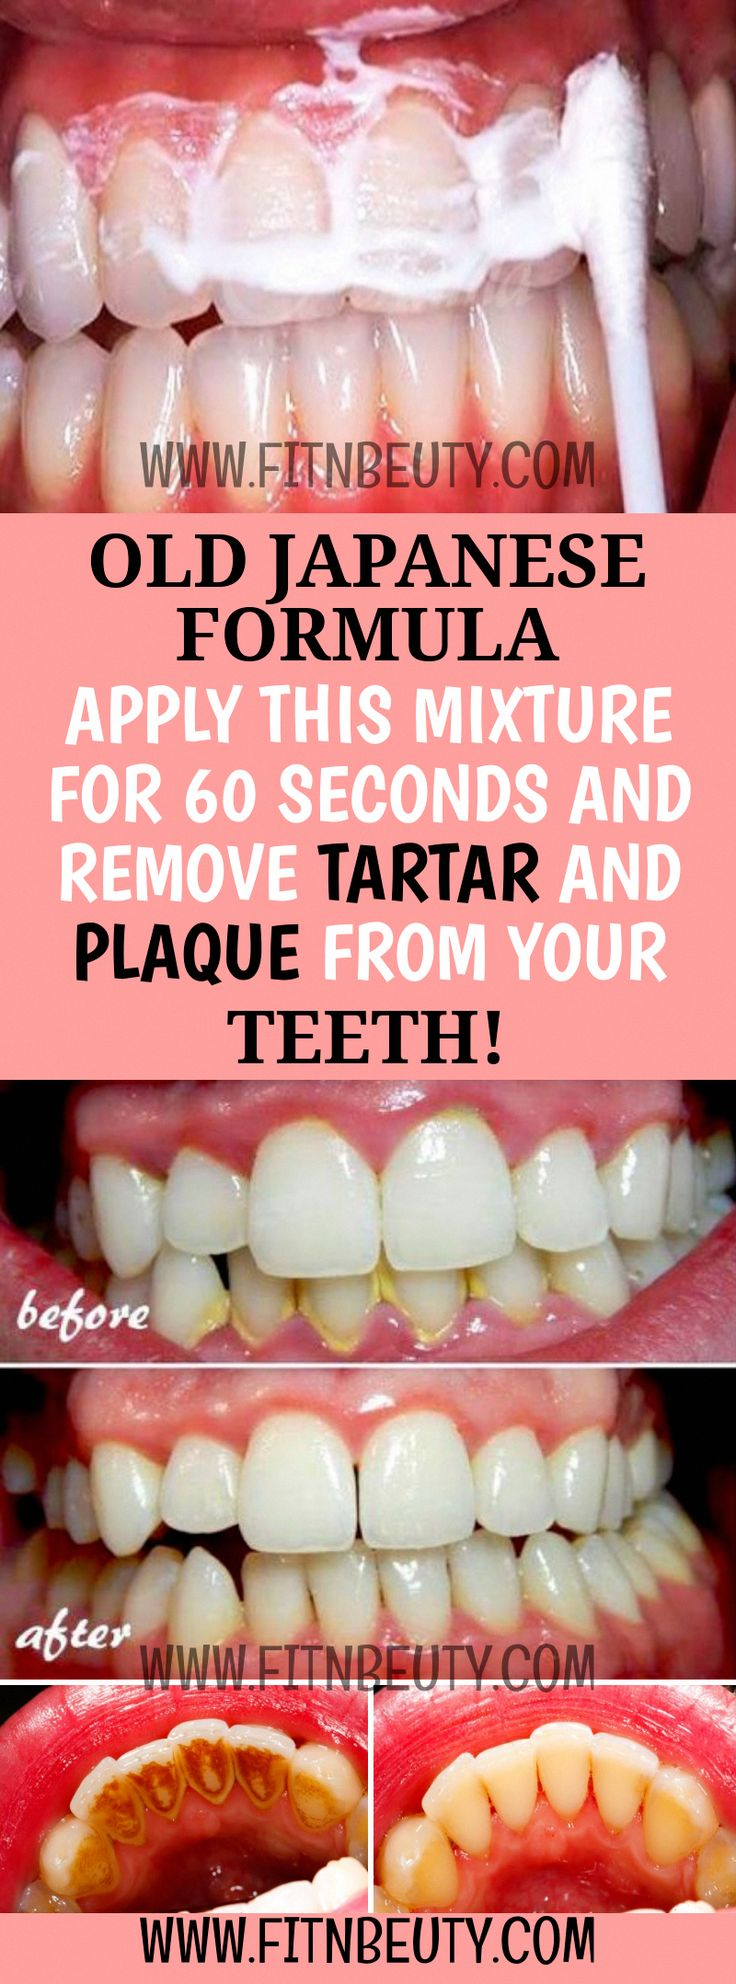 Old japanese formula apply this mixture for 60 seconds and